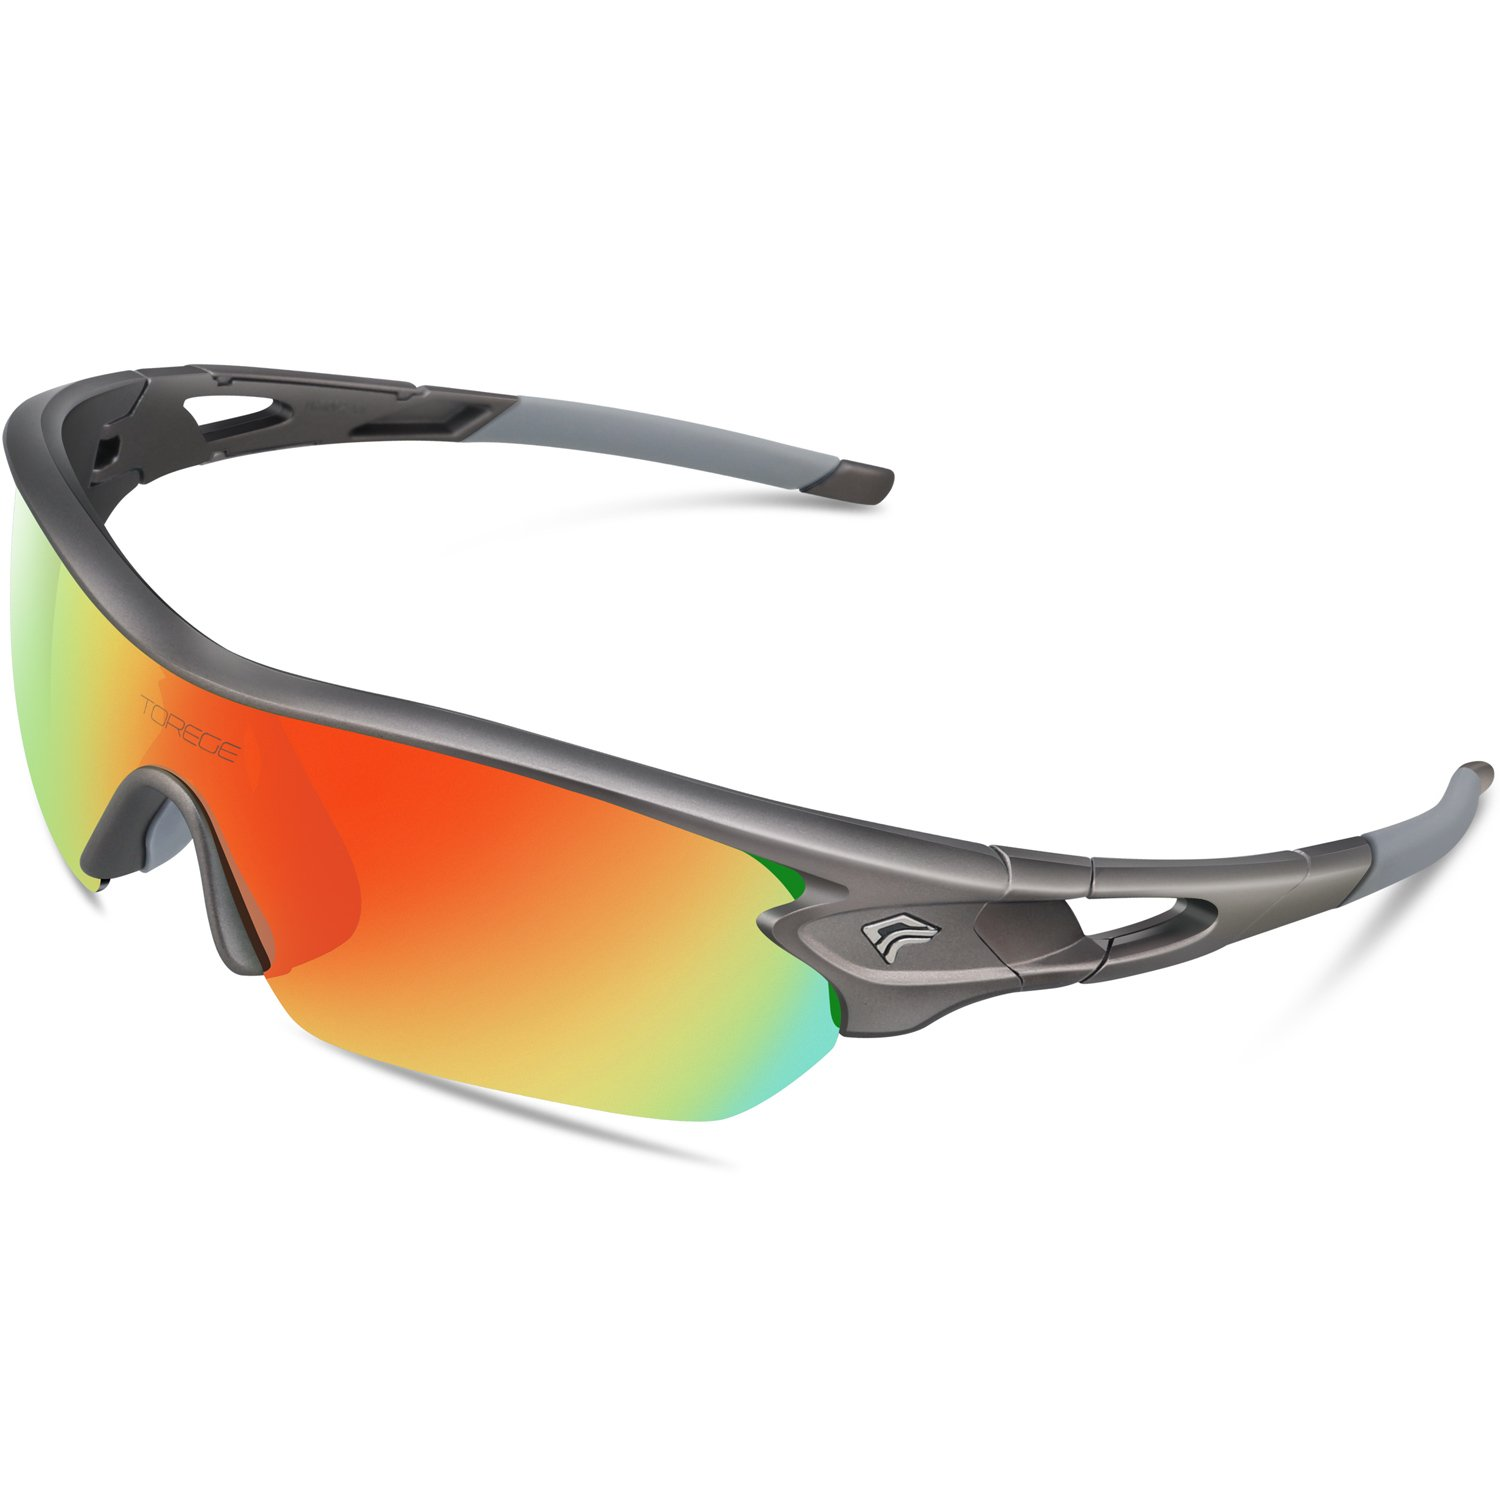 TOREGE Polarized Sports Sunglasses with 5 Interchangeable Lenes for Men Women Cycling Running Driving Fishing Golf Baseball Glasses TR002 (Grey Frame&Rainbow Lens) by TOREGE